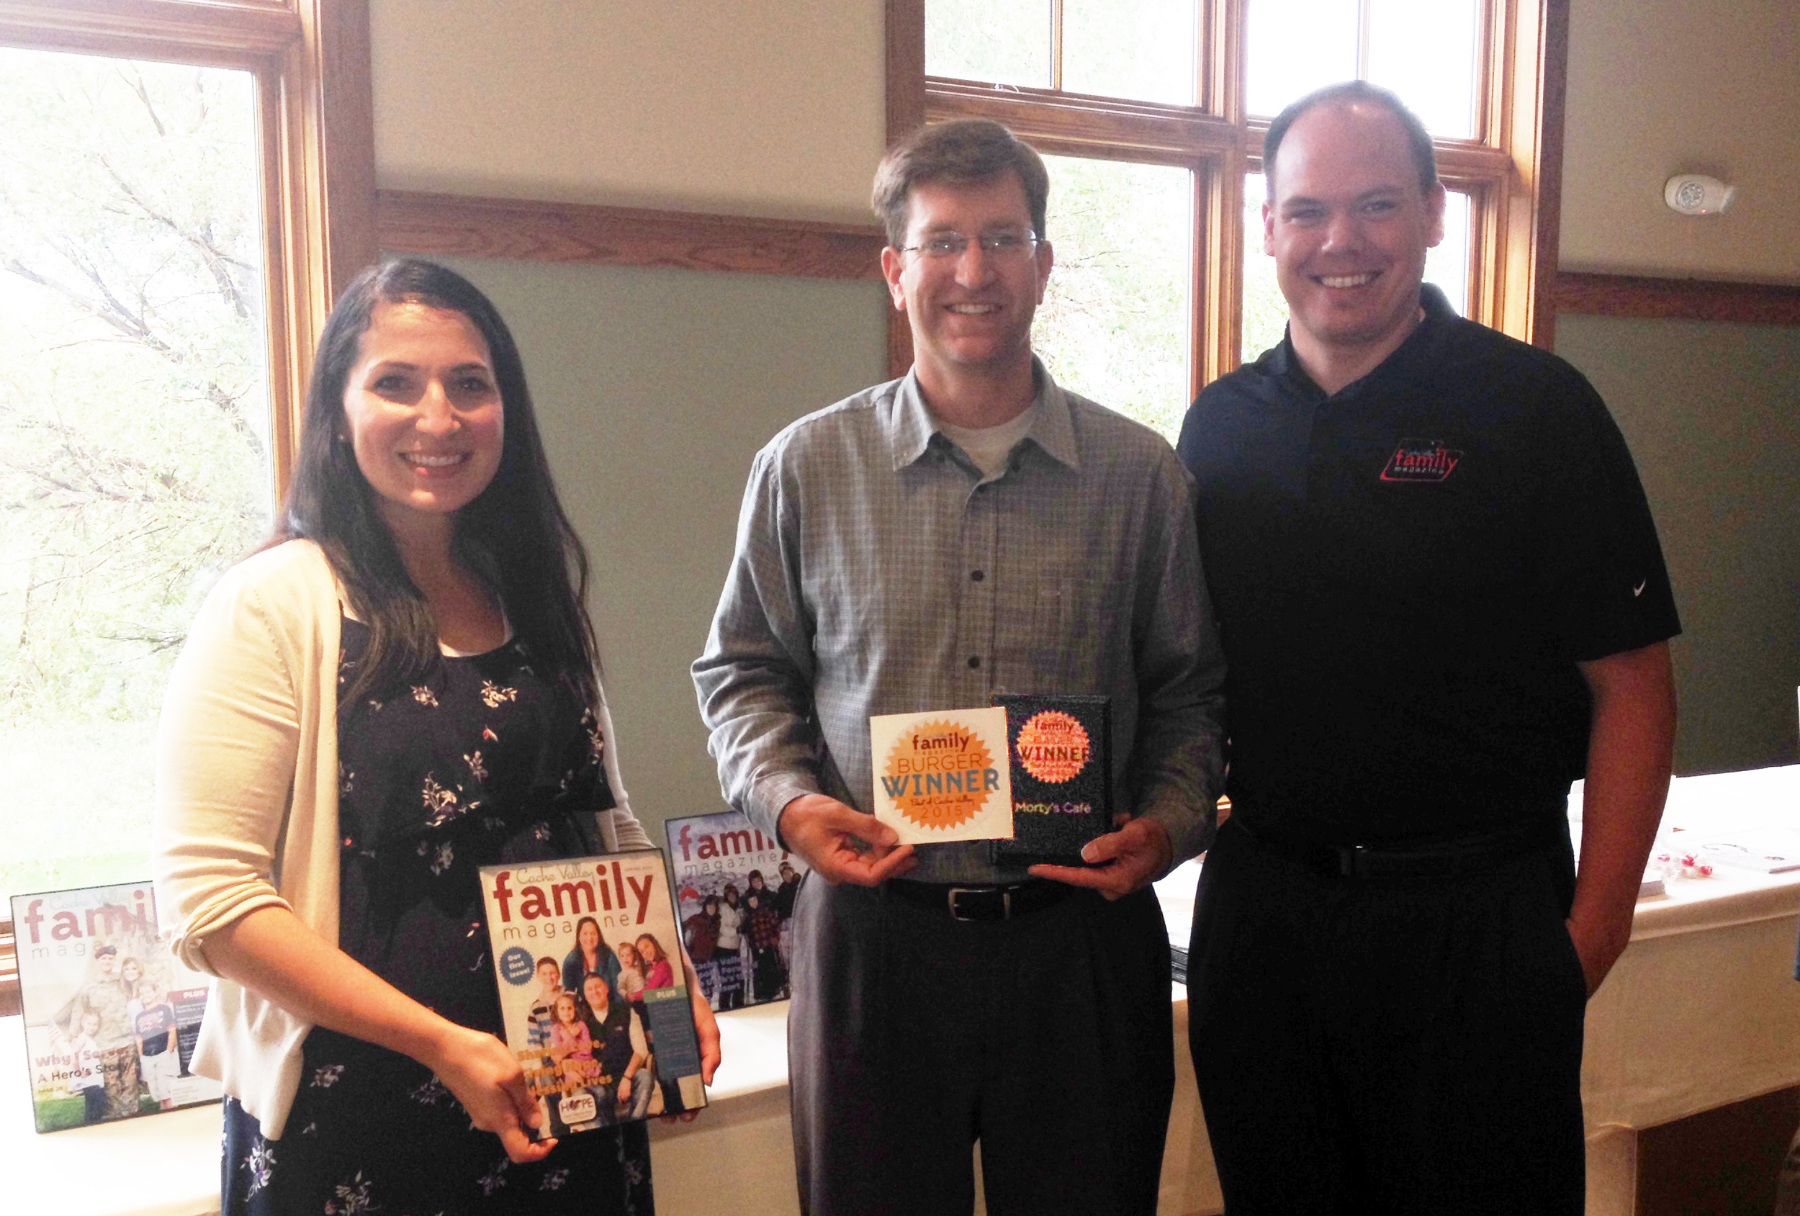 """Preston Parker, Co-Owner of Morty's Cafe, receiving the """"Best Burger"""" award from Cache Valley Family Magazine Co-Founders, Emily and Bryan Buckley."""